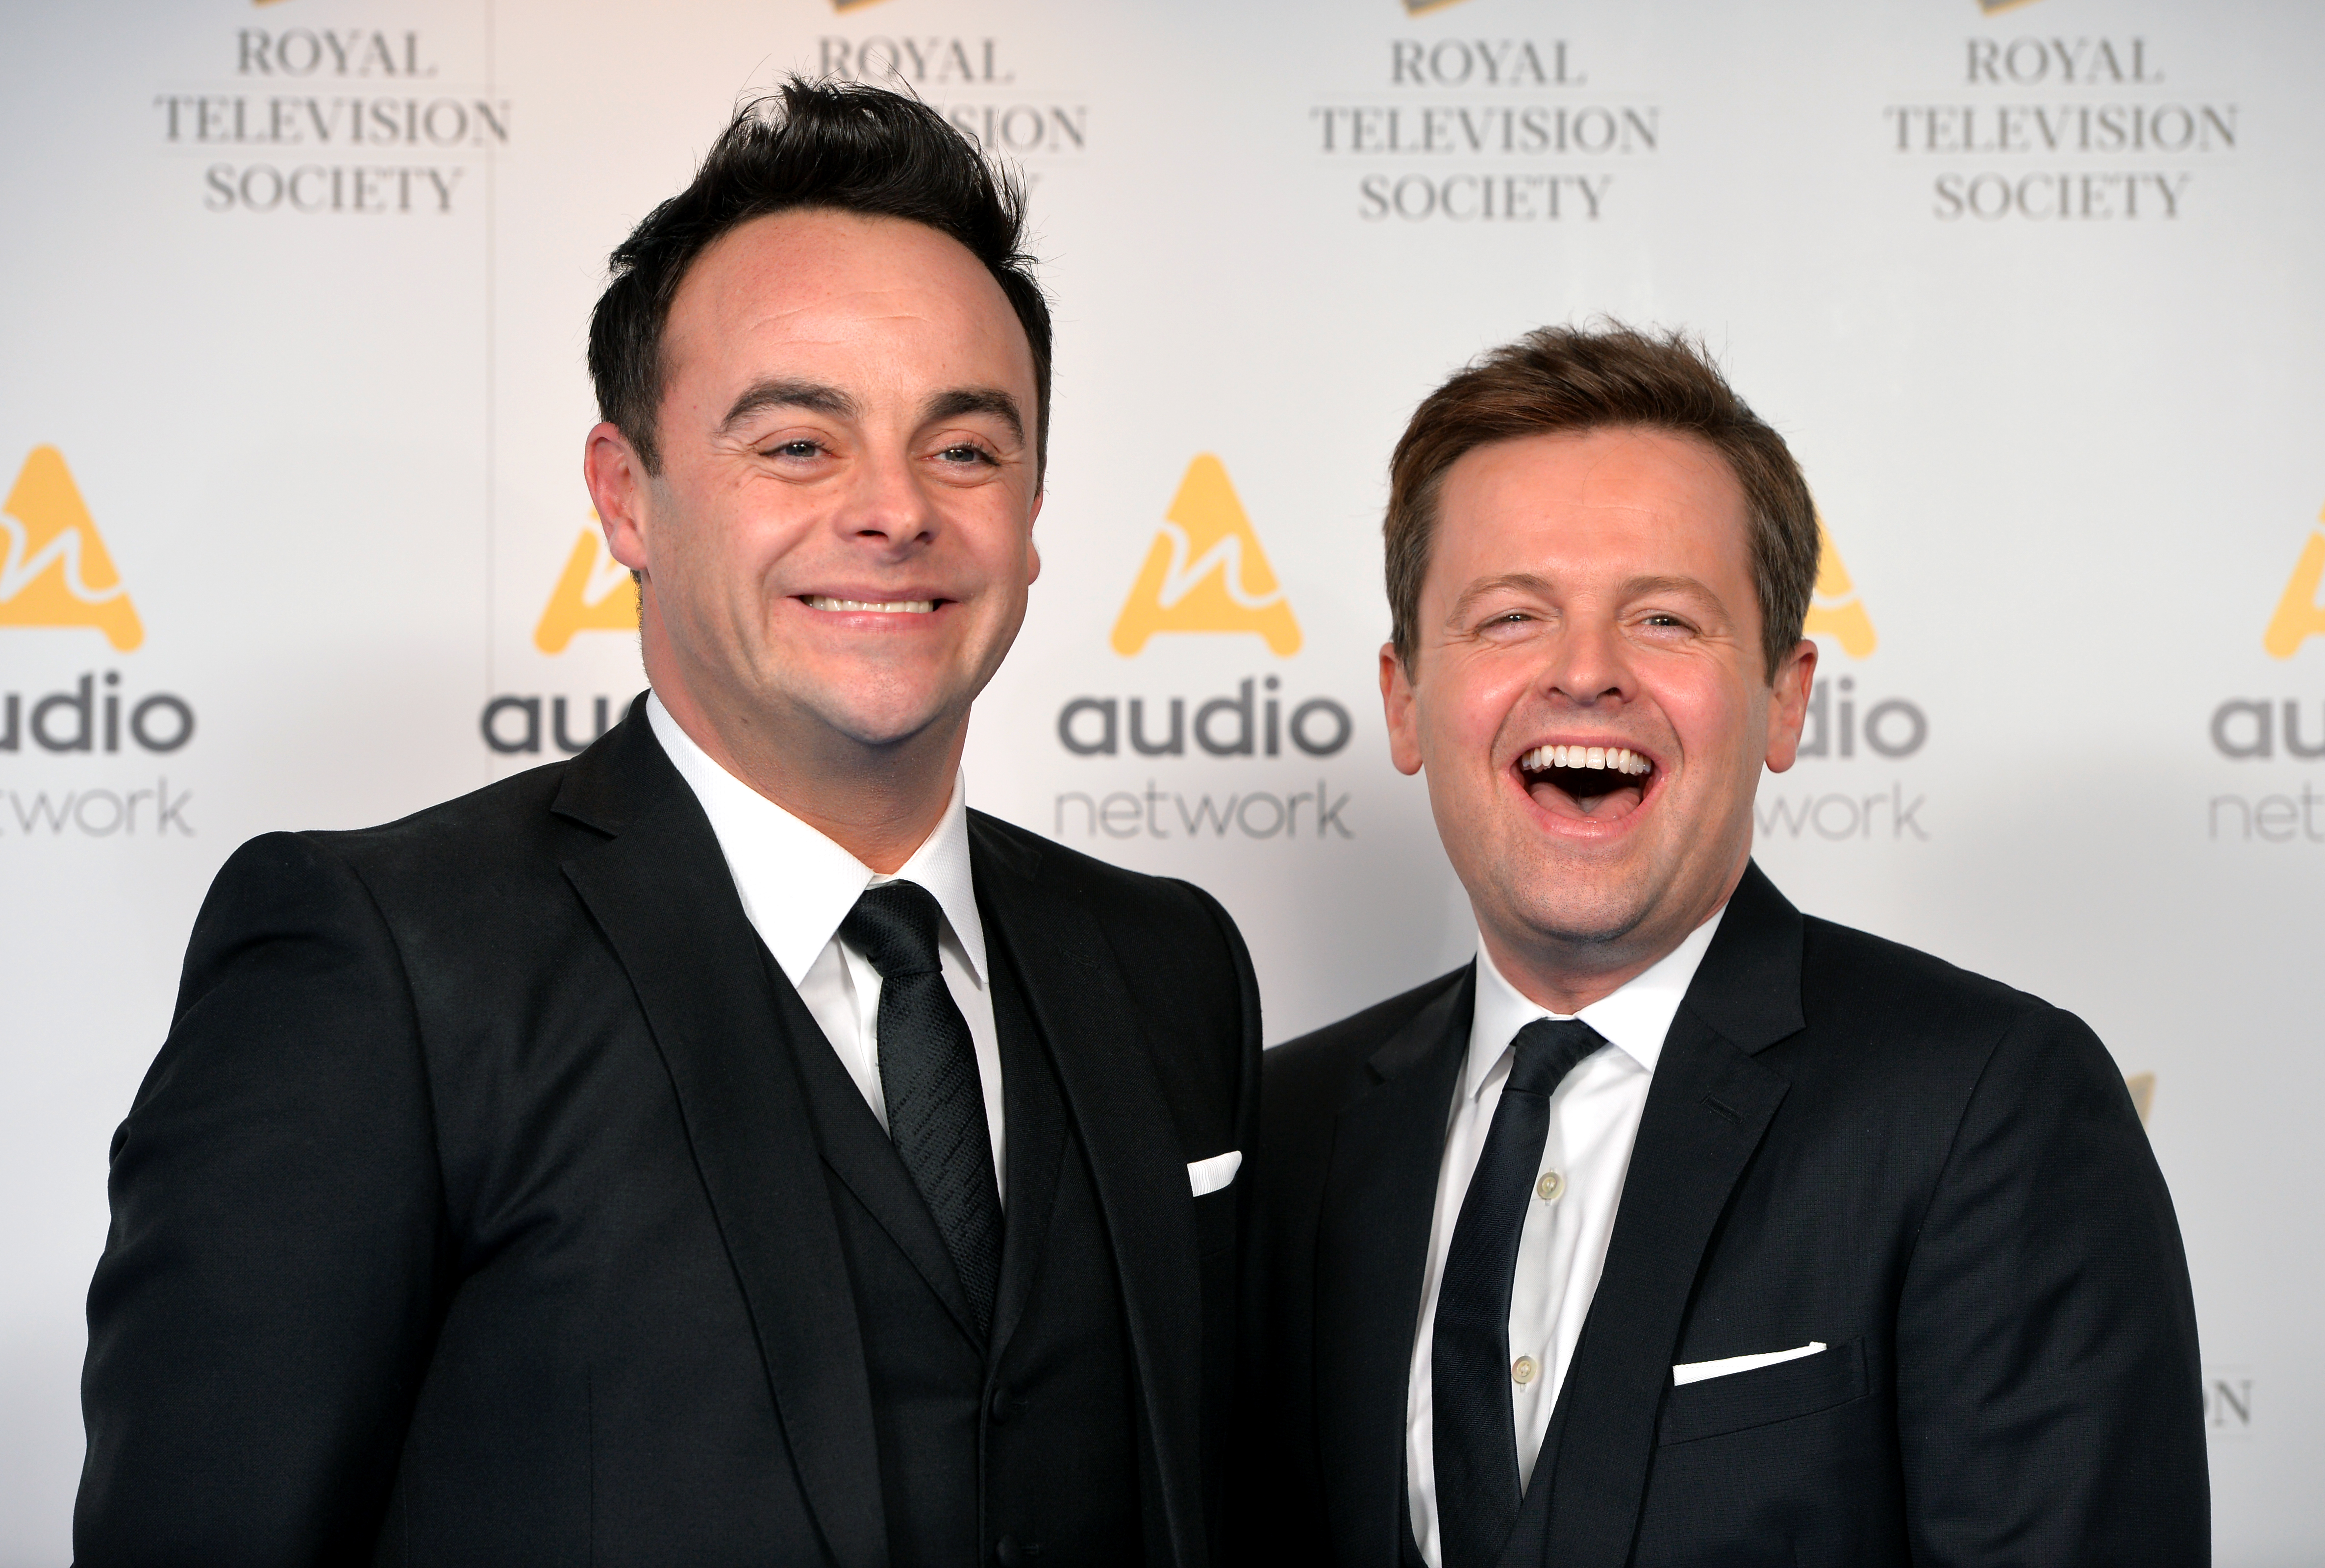 Ant McPartlin 'set to miss Britain's Got Talent and I'm A Celebrity'